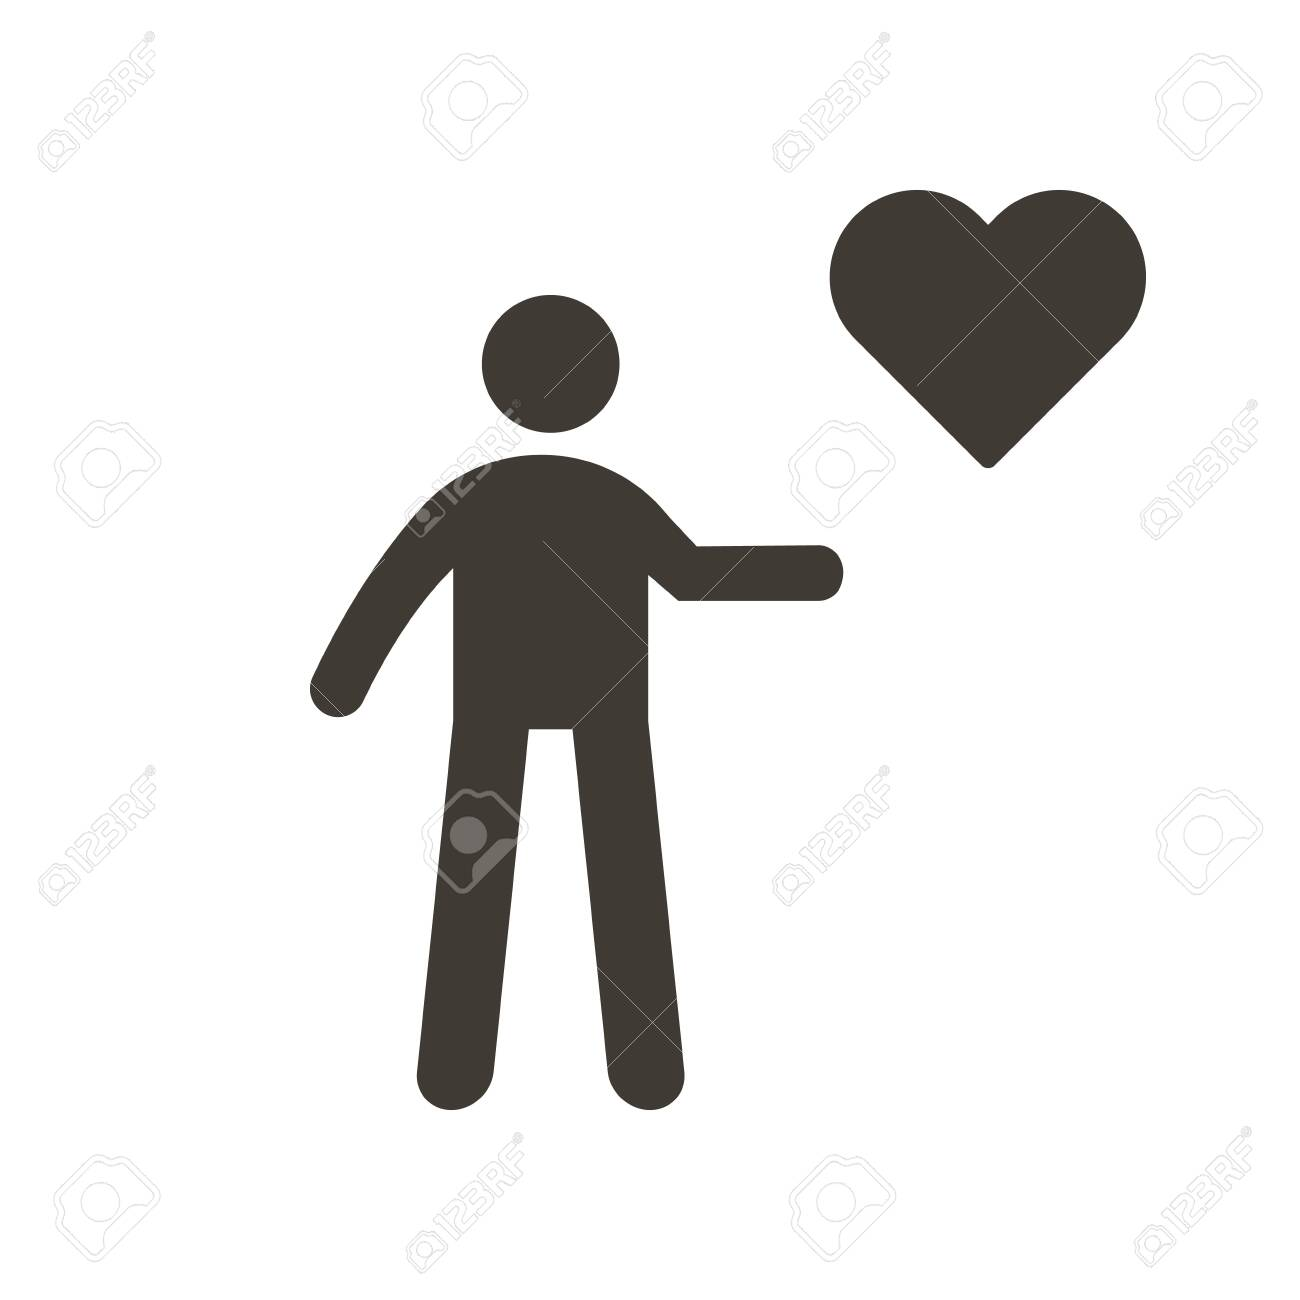 Person holding heart icon. Vector flat glyph illustration. Helping, volunteering, donation, charity, humanitarian, medical, love and happiness concepts. - 134503202